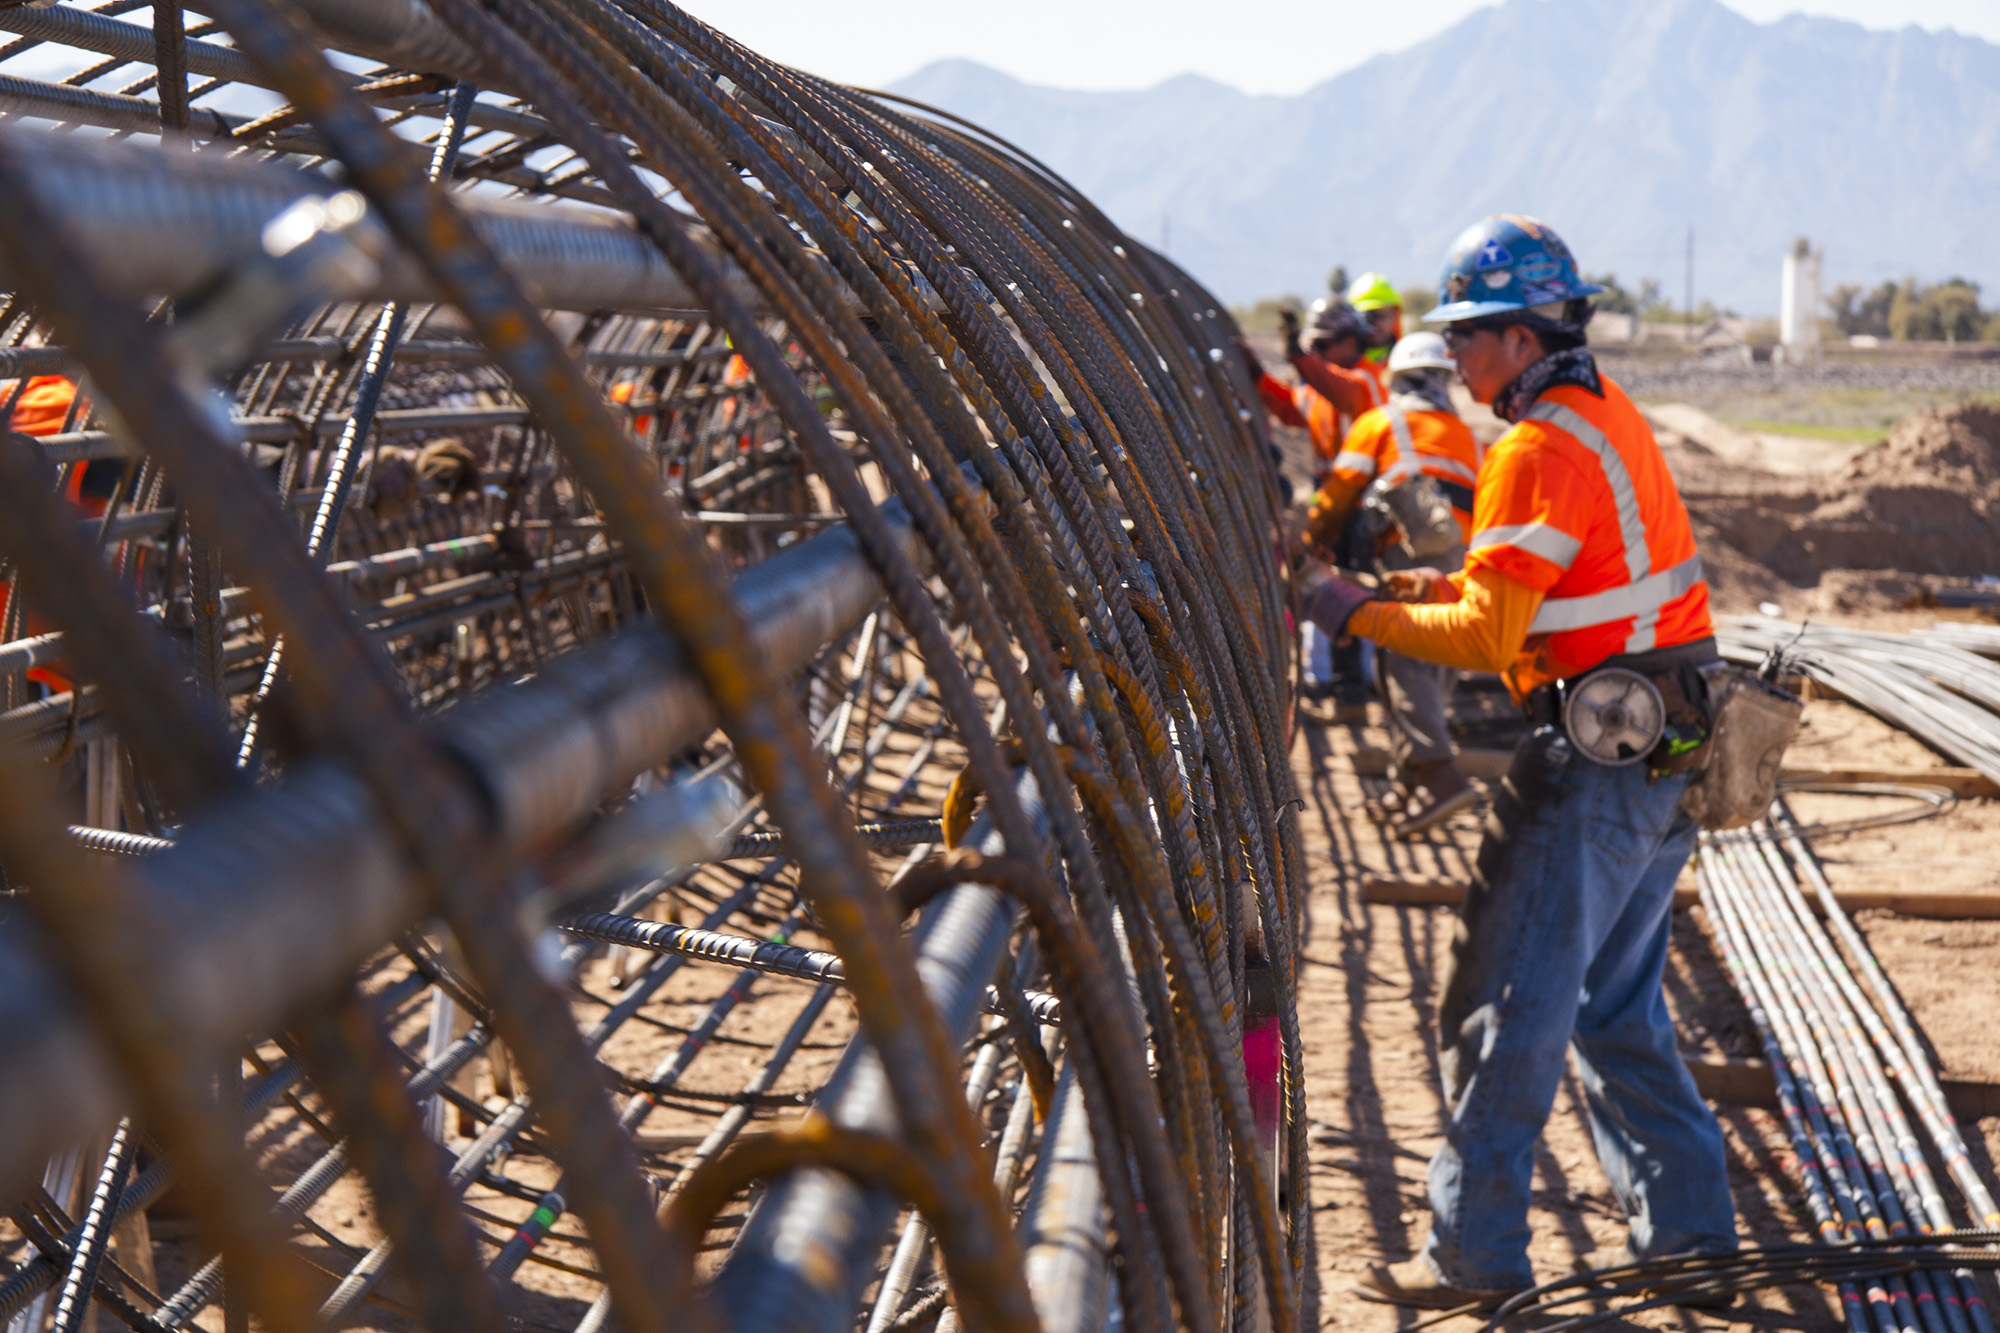 Rebar being installed at the Salt River Bridge for the South Mountain Freeway near Laveen, AZ.